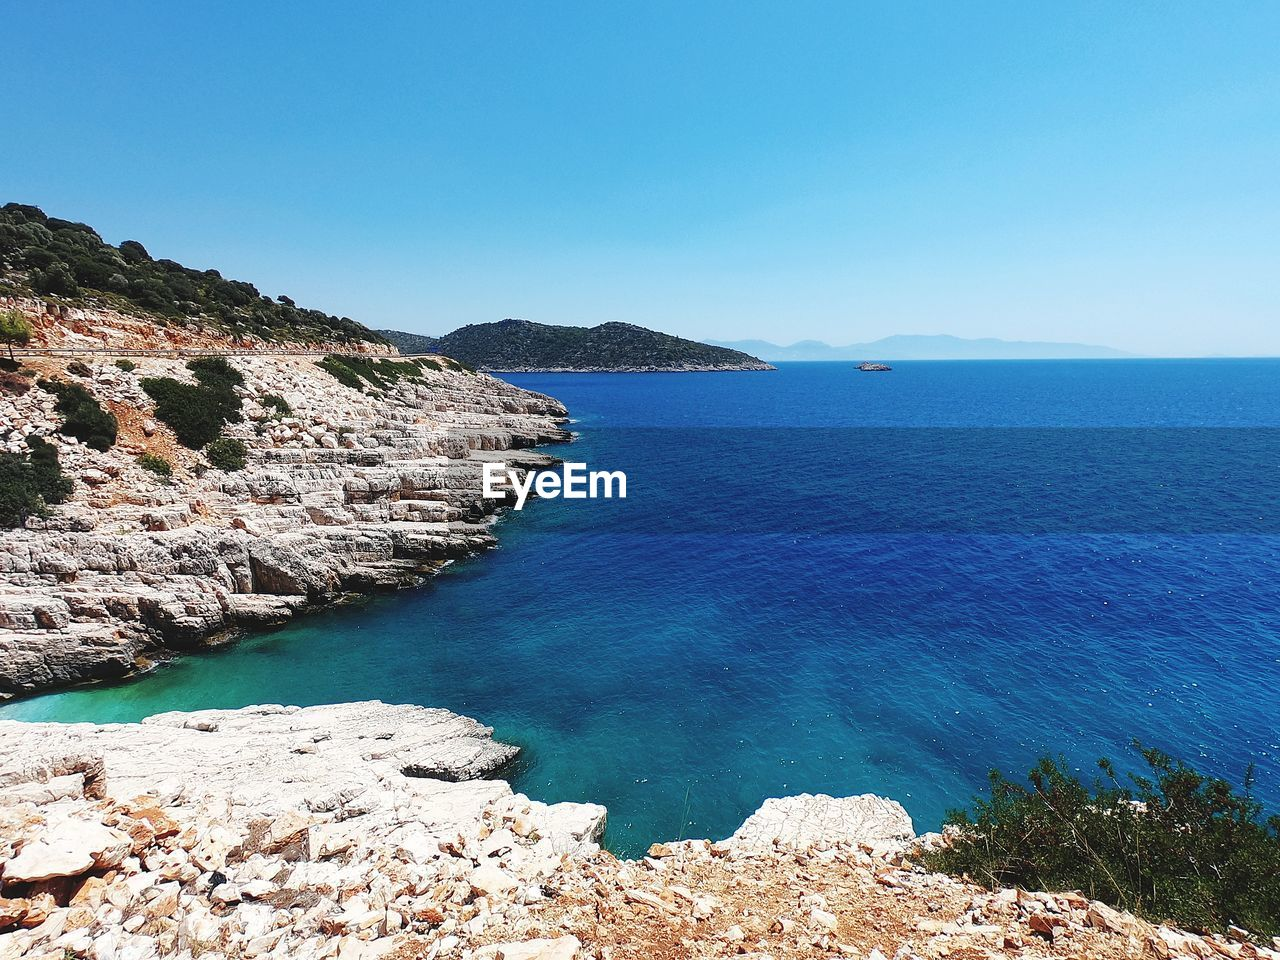 water, scenics - nature, sky, sea, beauty in nature, blue, tranquil scene, tranquility, clear sky, nature, land, day, copy space, idyllic, rock, mountain, beach, rock - object, no people, horizon over water, outdoors, rocky coastline, turquoise colored